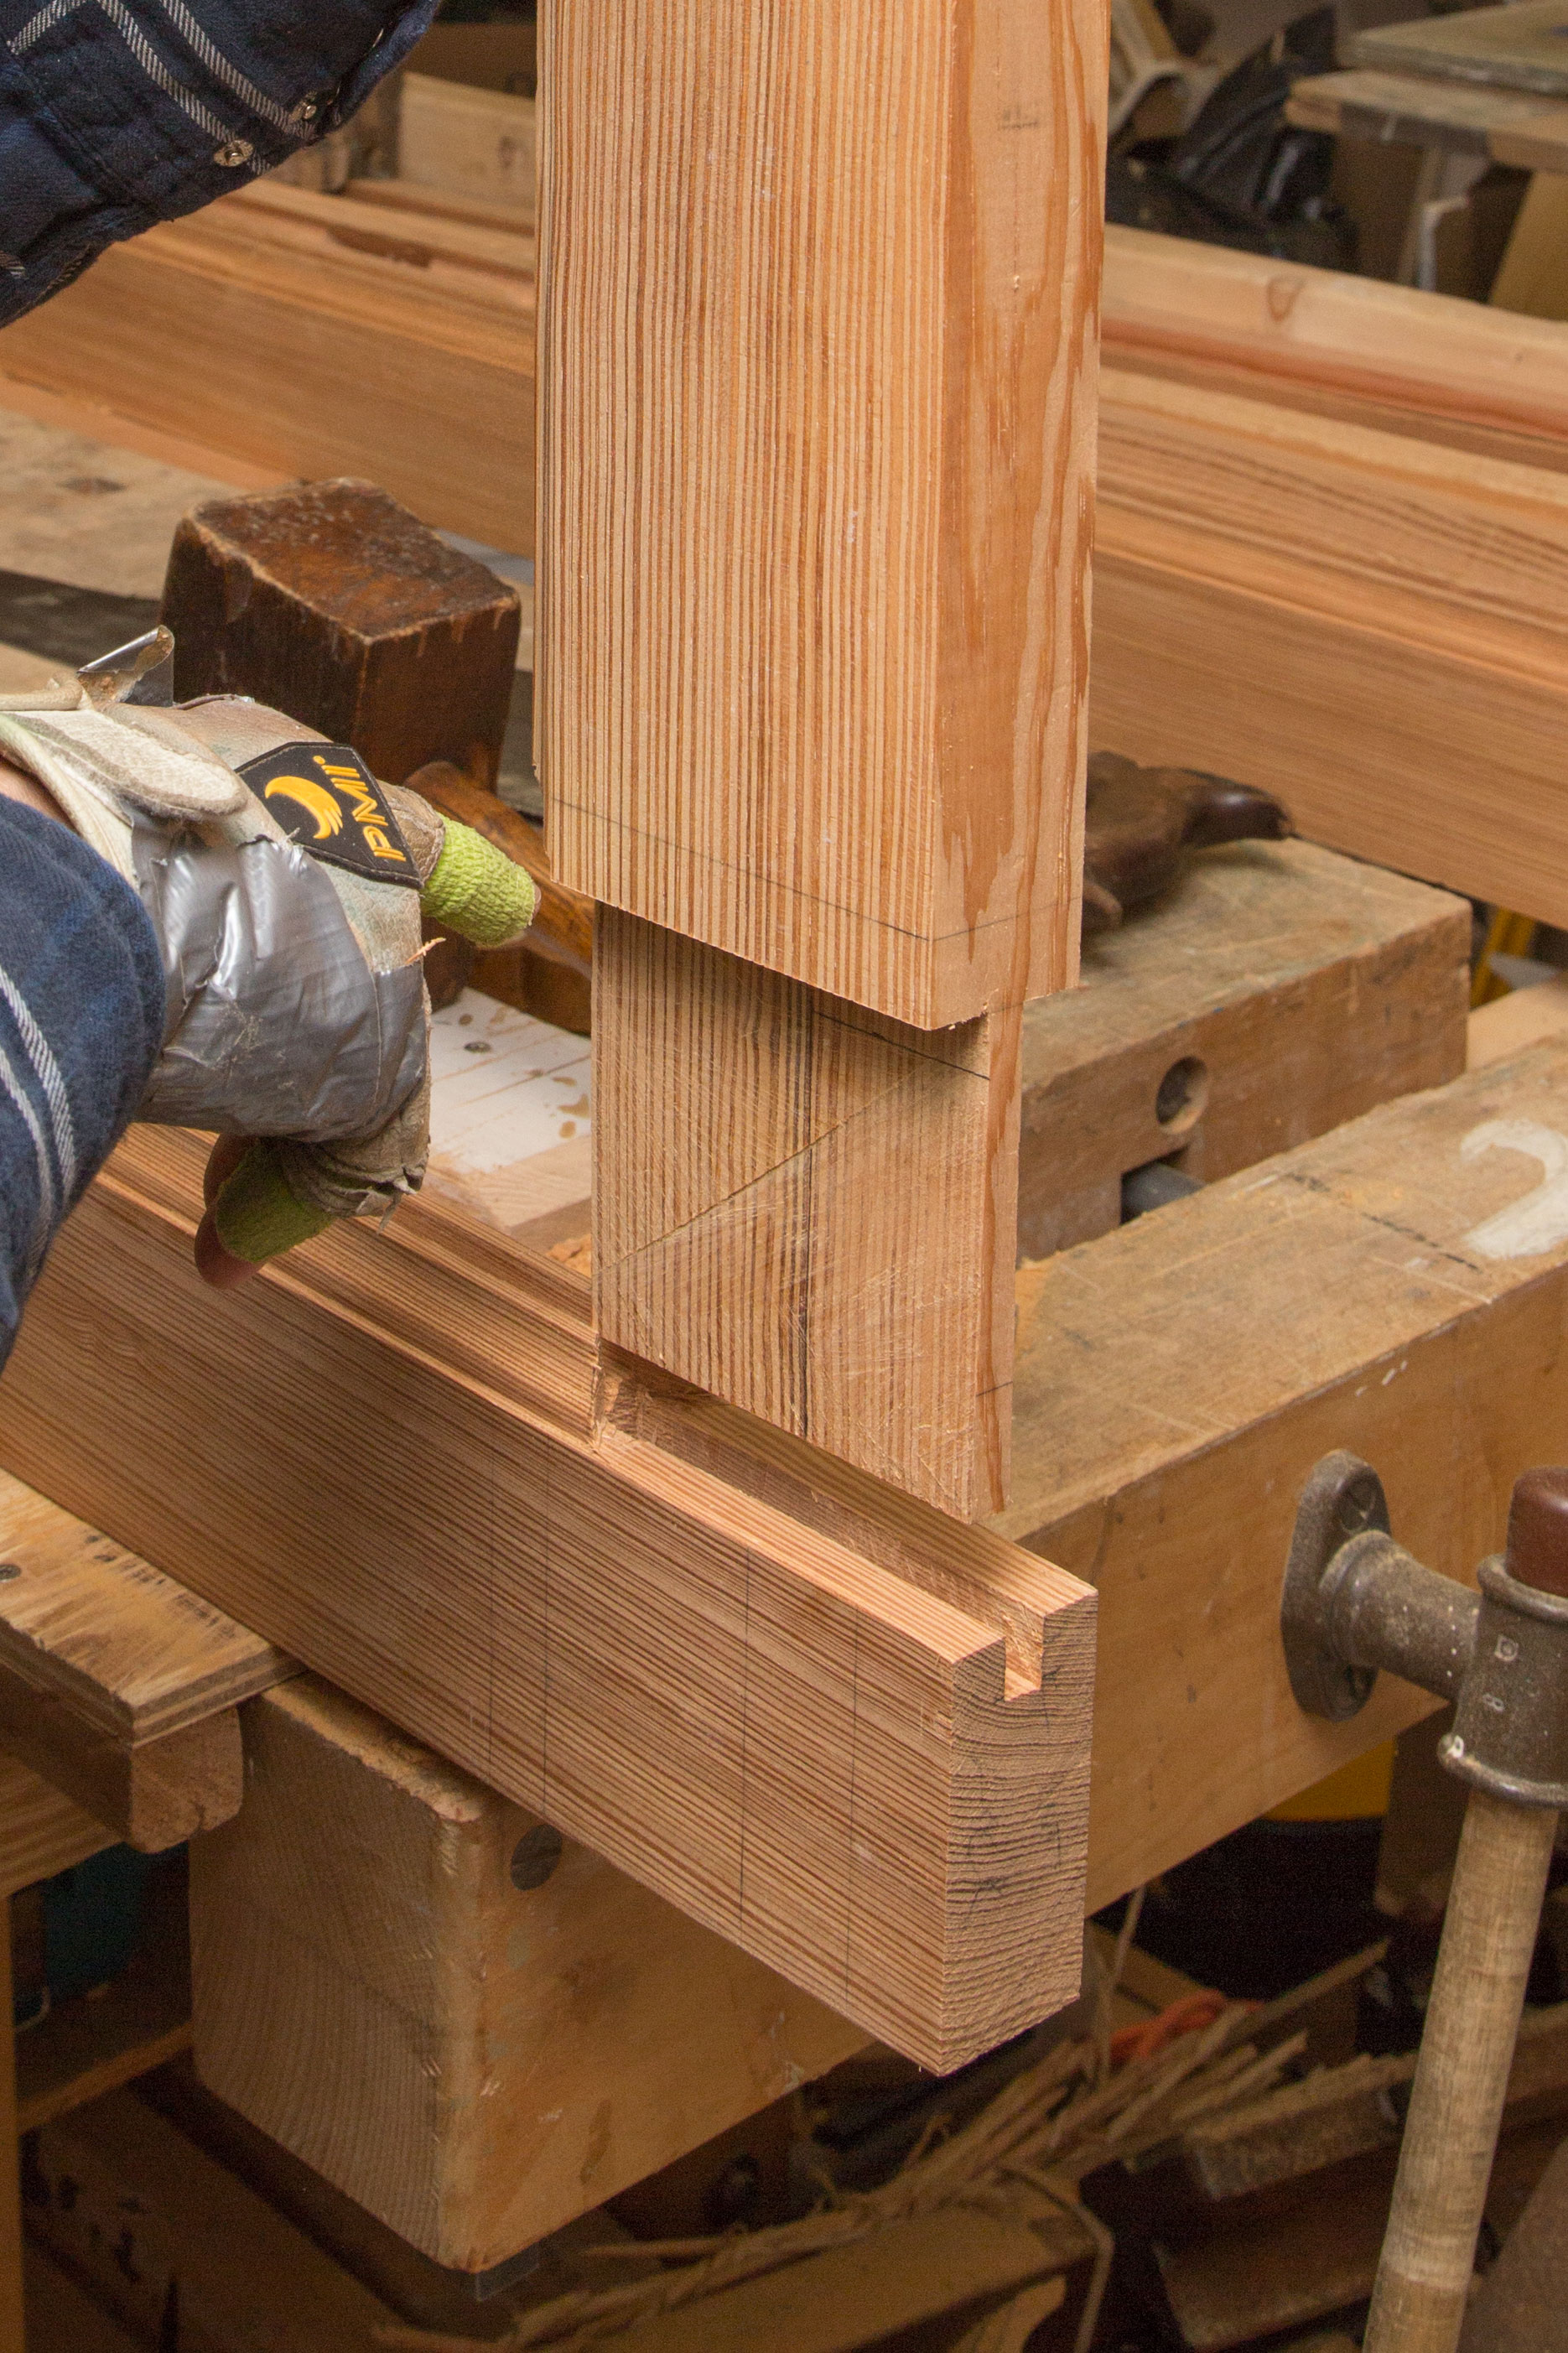 A mortise and tenon joint.